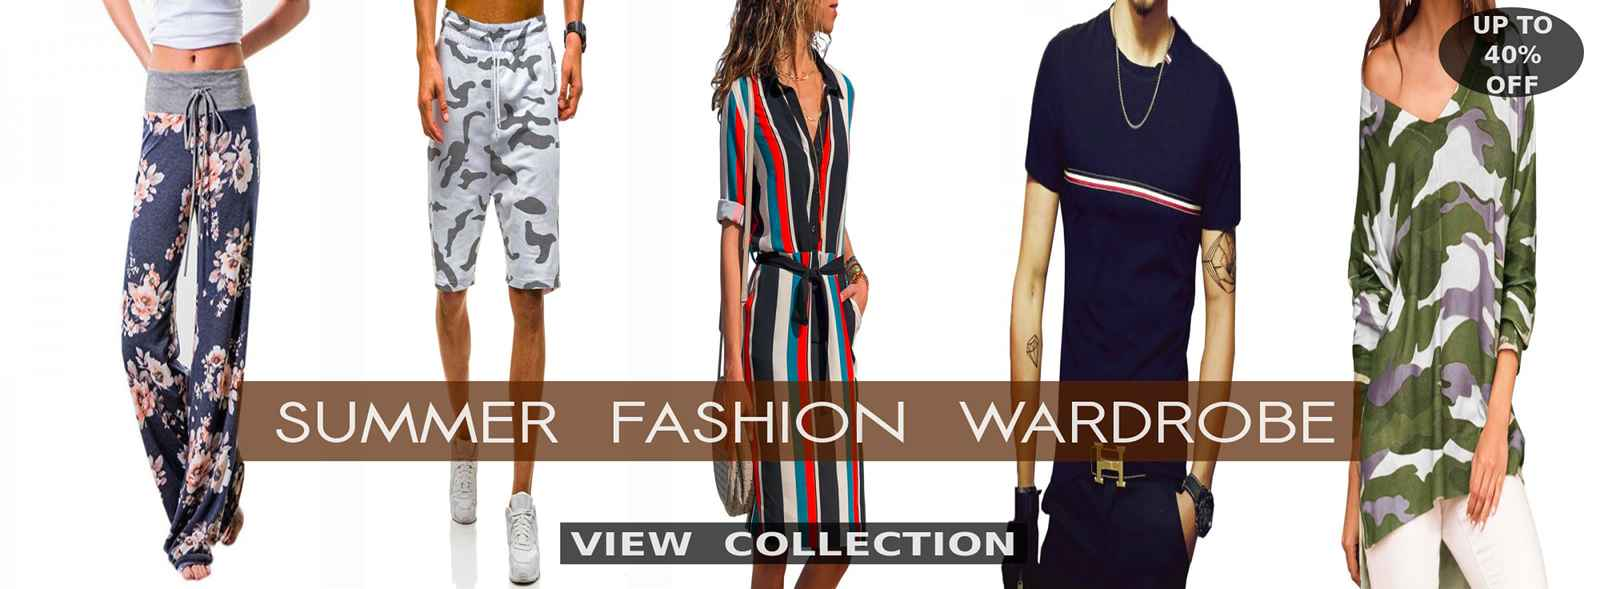 New Arrival Cool Summer Dresses, Mini Dresses, Rompers, Tops, Tees, T Shirts, Blouses, Maxi Dresses, Casual Summer Clothing, Shorts, Skirts, Shirts, Trousers, Cotton Pants, Denims, Jeans, Swimsuits, Bikinis And Sexy Beach Outfits For Men And Women This 2020 At Best Deals And Discounts Of Up To 30% Off